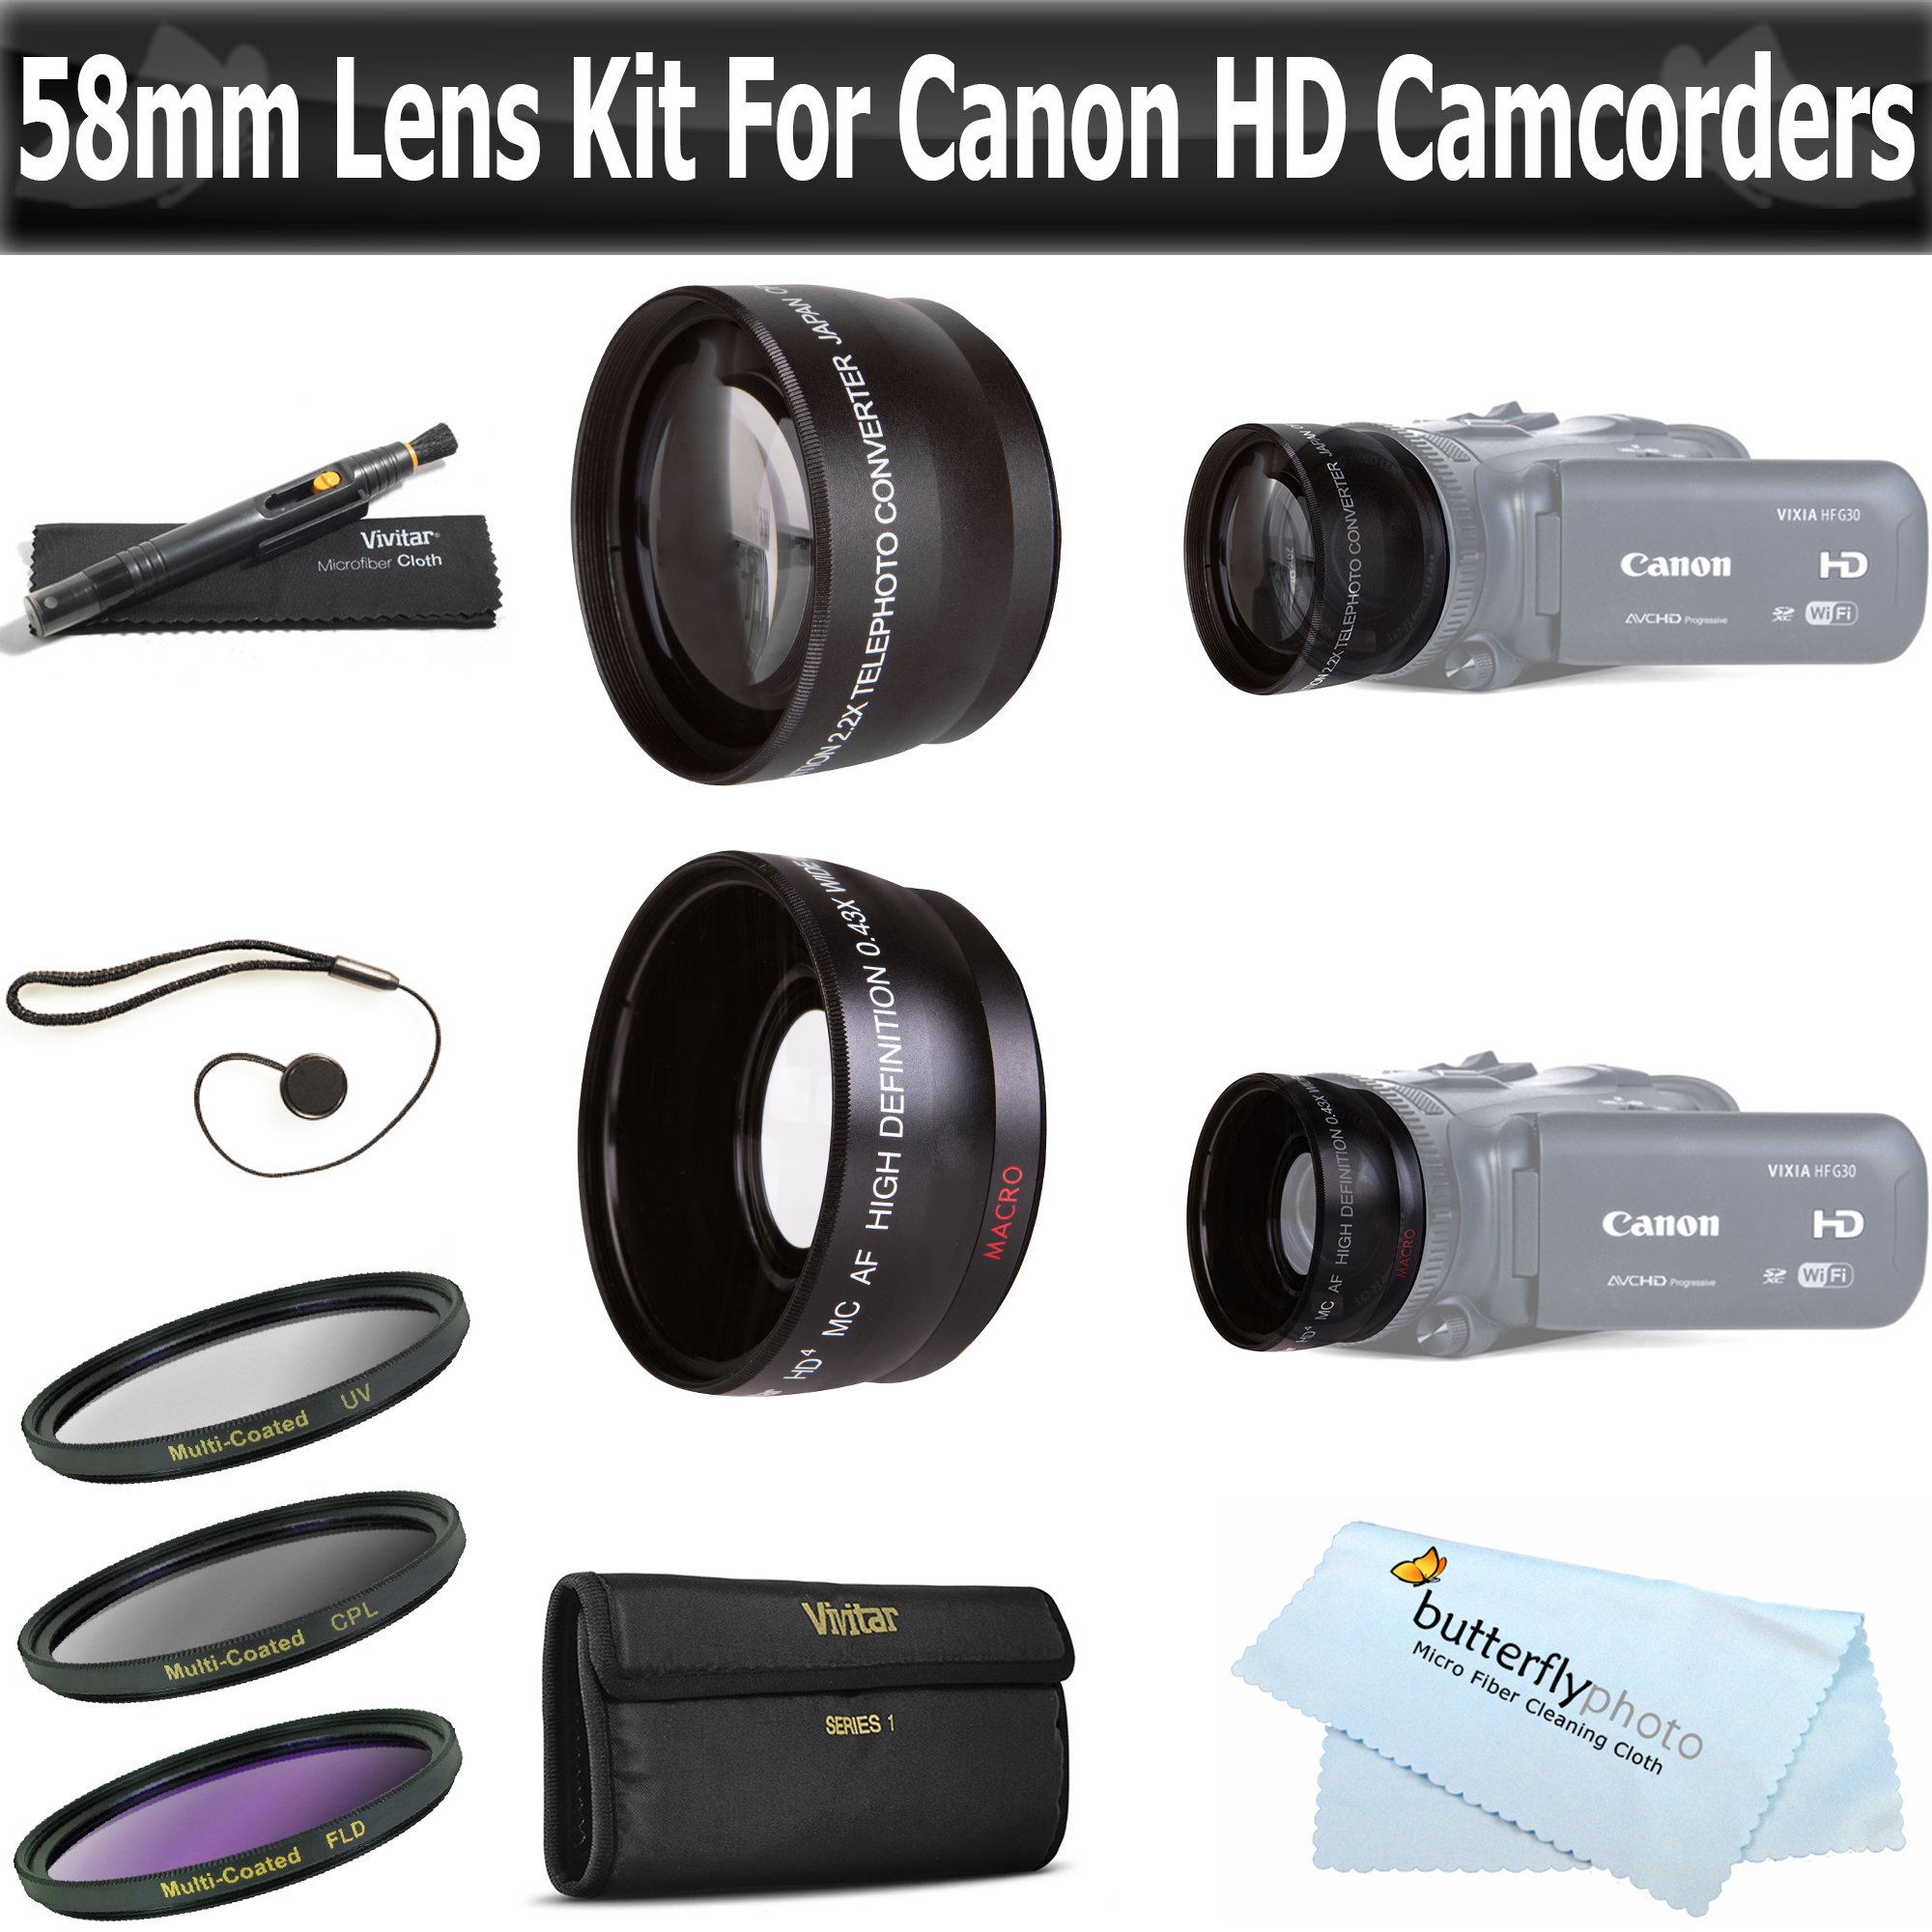 ButterflyPhoto 58mm 2x Telephoto and .45x Wide Angle Lens Kit + (3) Filters (UV-CPL-FLD) Accessories Kit For Canon VIXIA HF S21, HF S20, HF S200, HF S30 Dual Flash Memory Camcorder by ButterflyPhoto